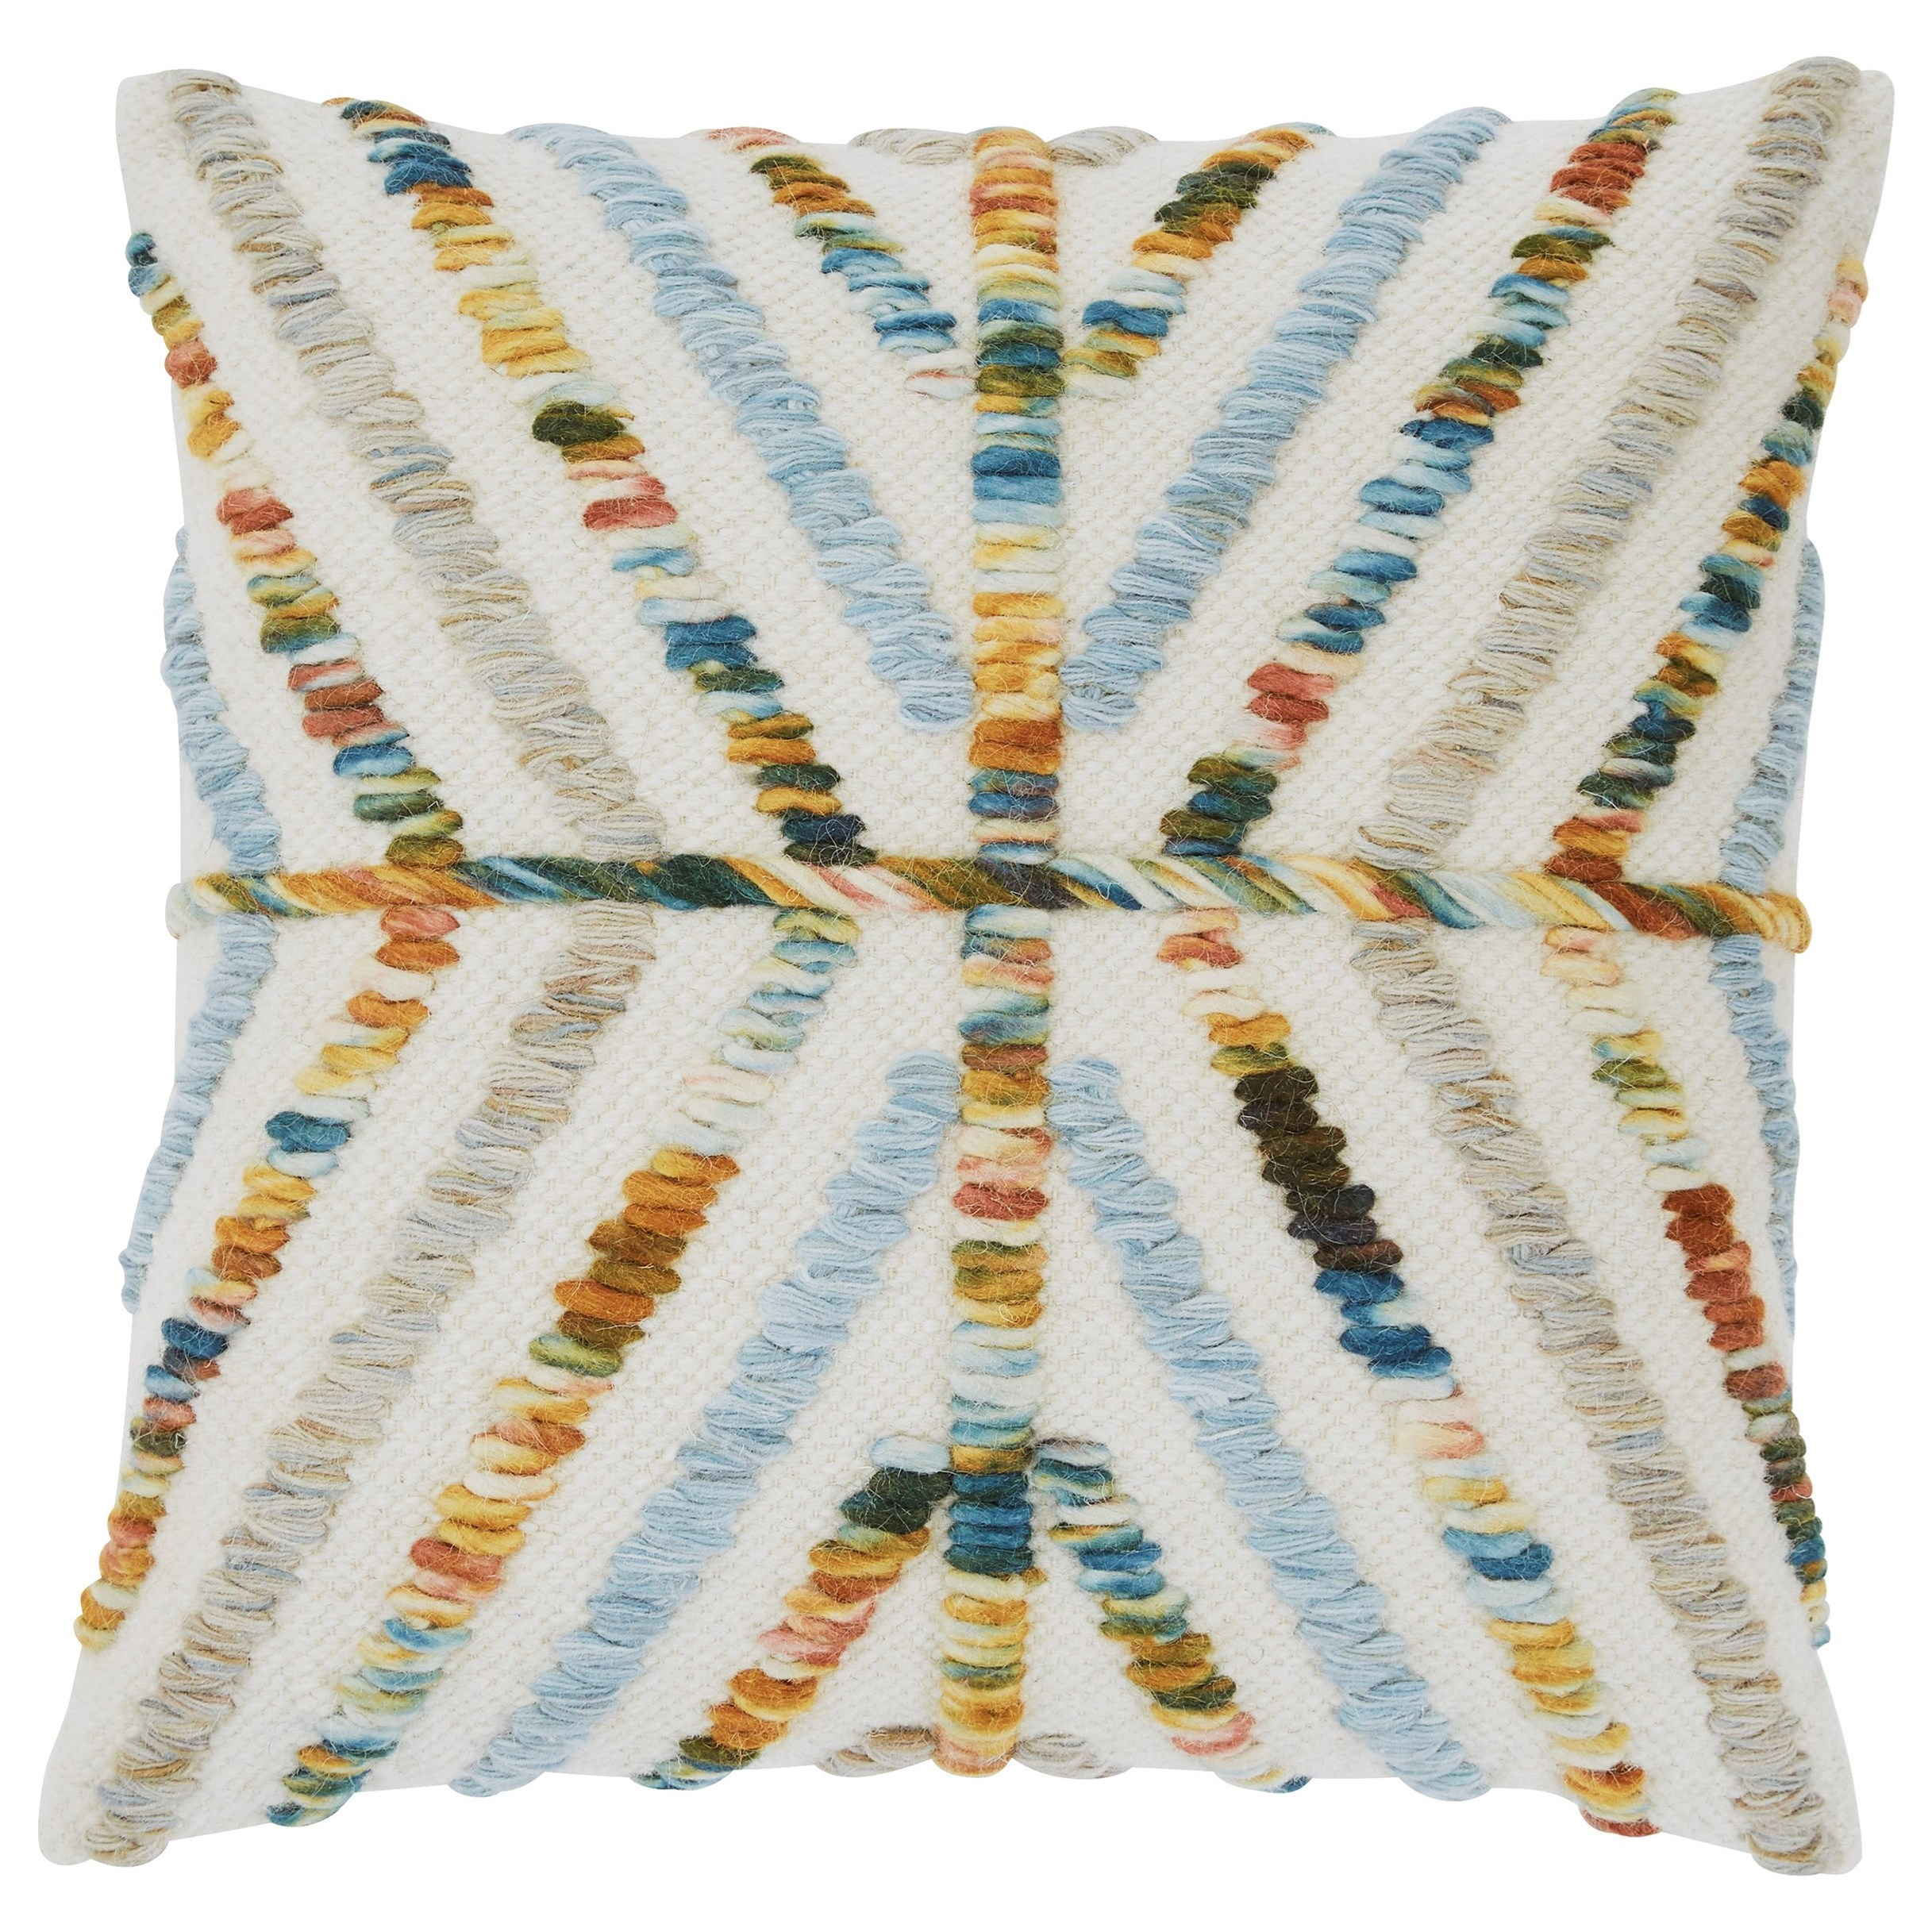 Pillows Dustee Multi Pillow by Signature Design by Ashley at Sparks HomeStore